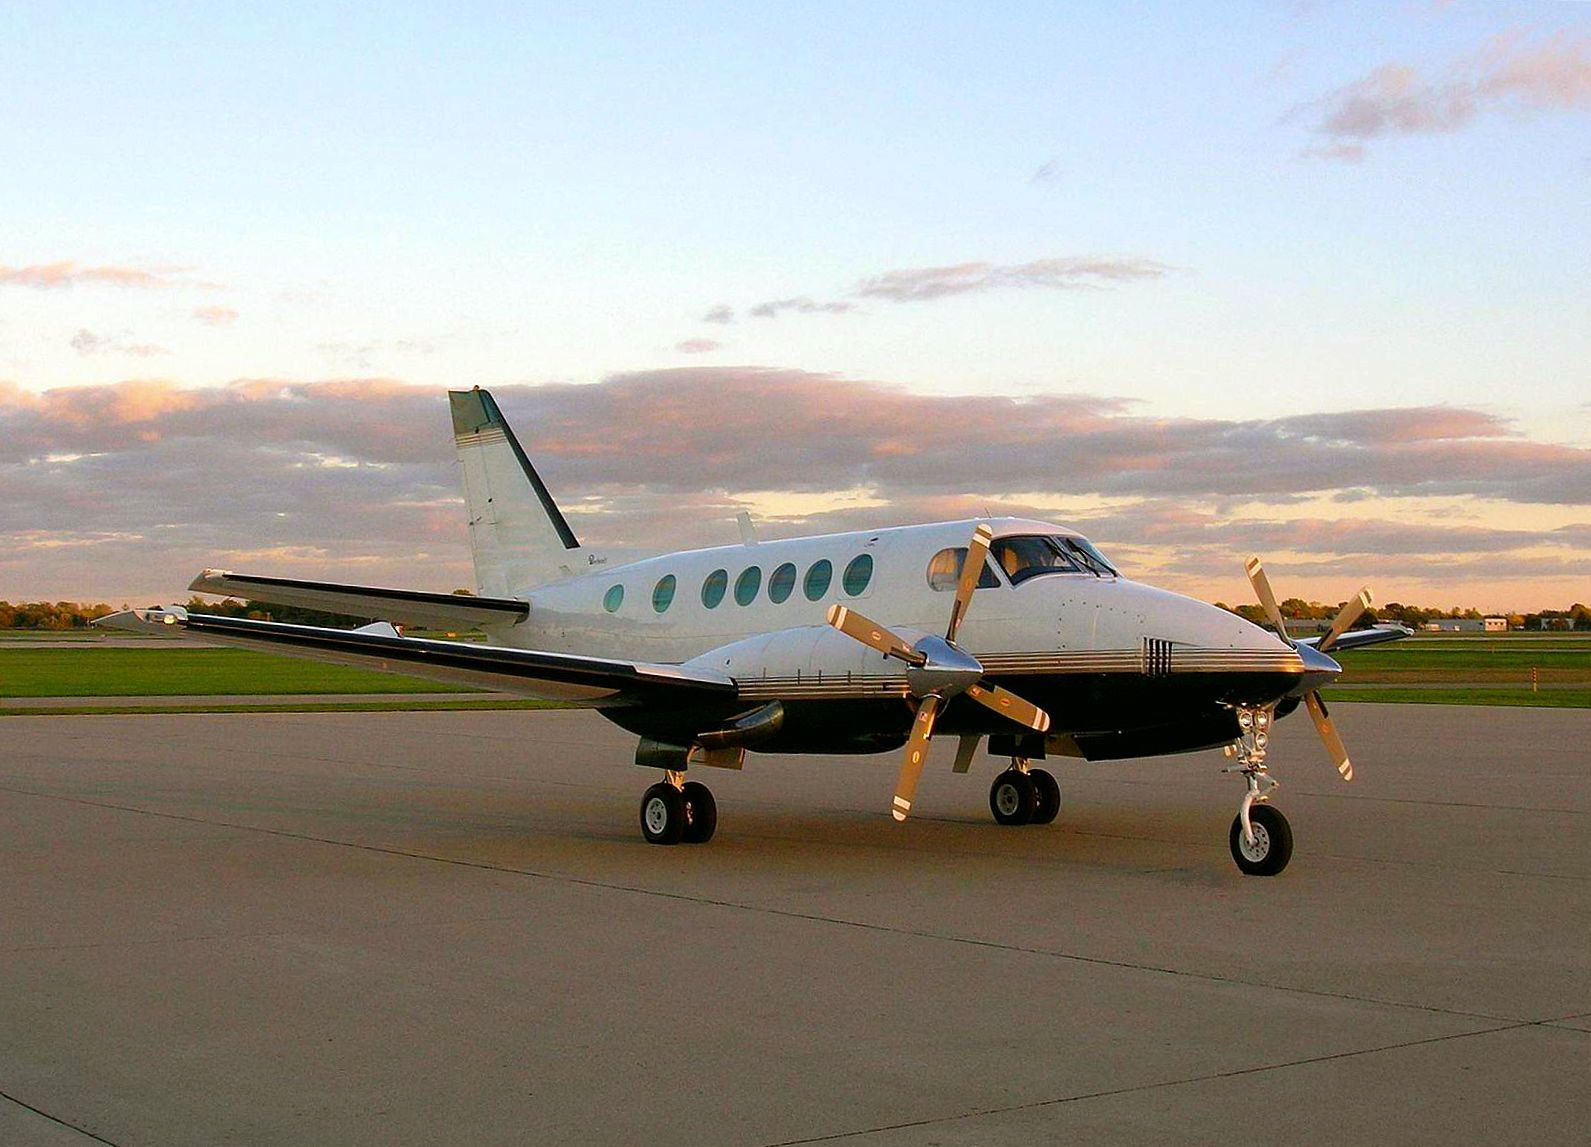 Improving upon the popular King Air 90 model, the King Air